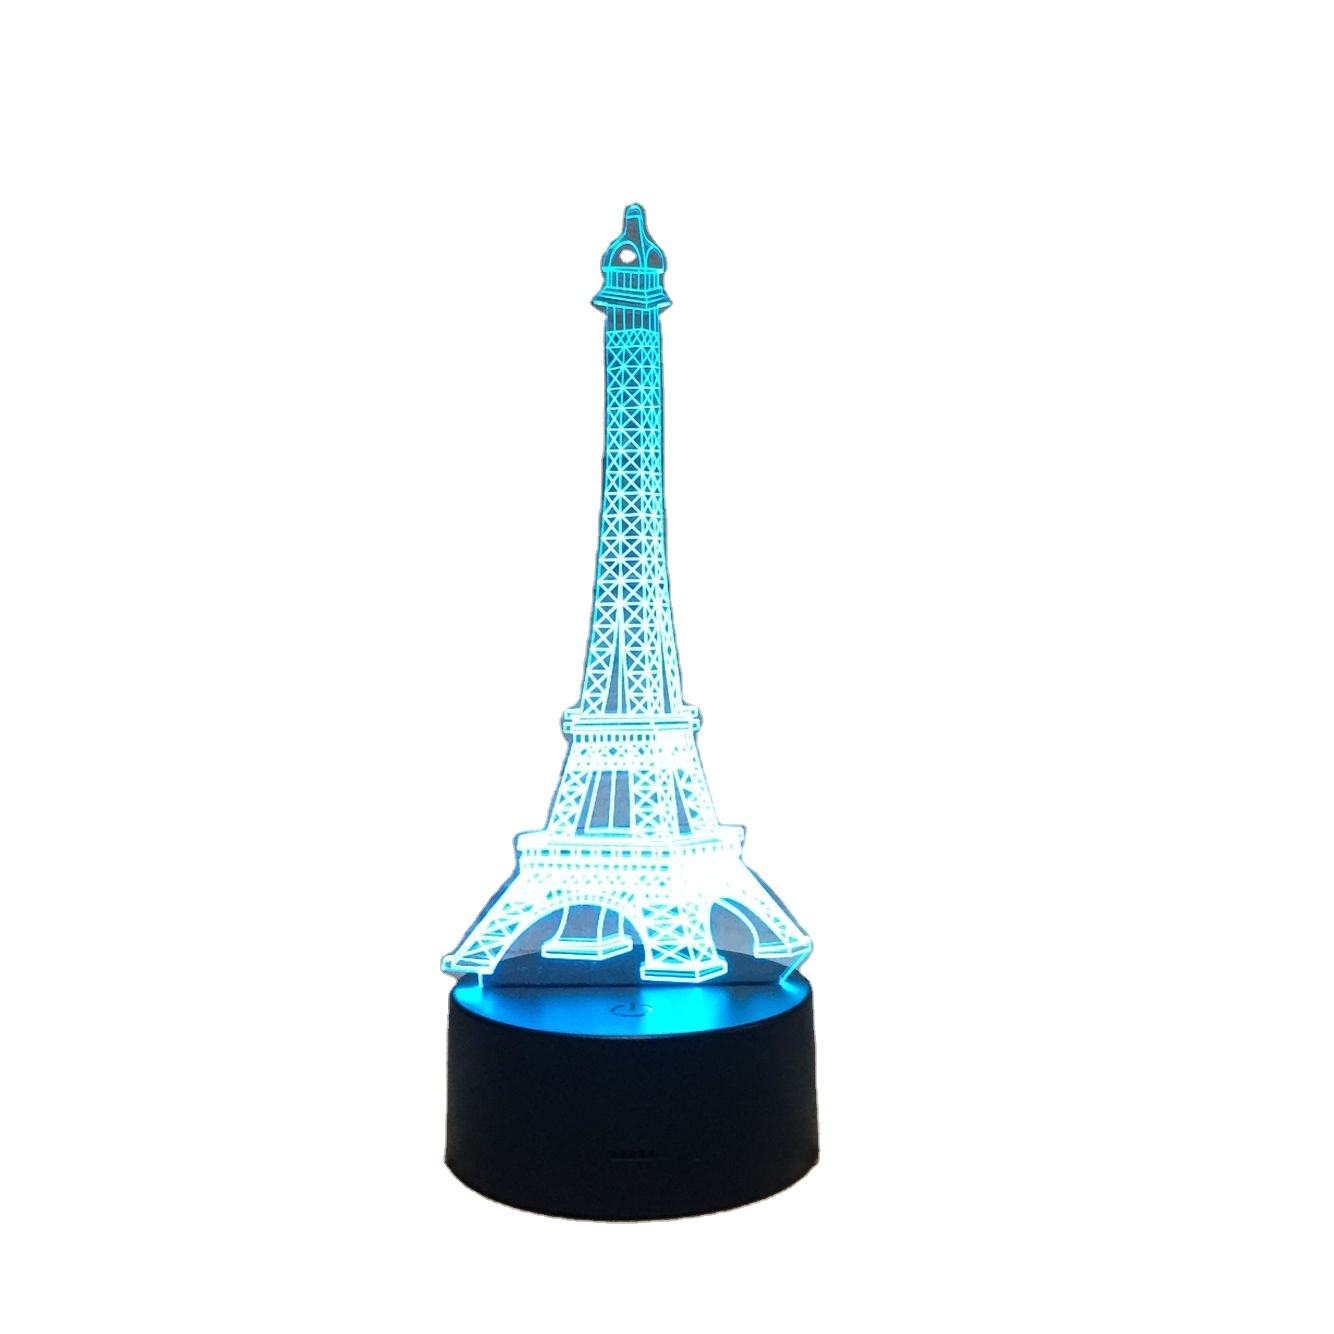 Kids room decor optical novelty illusion Eiffel tower night light 3d led